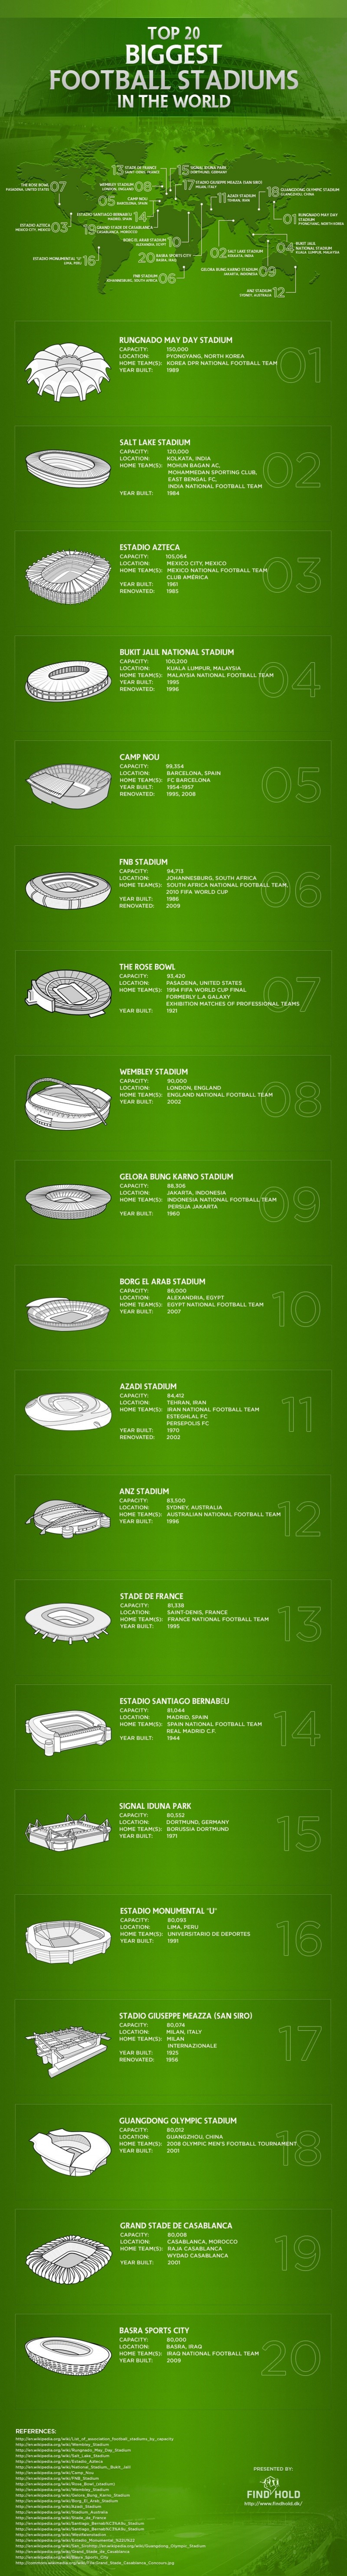 Top 20 Biggest Football Stadiums in the World Infographic